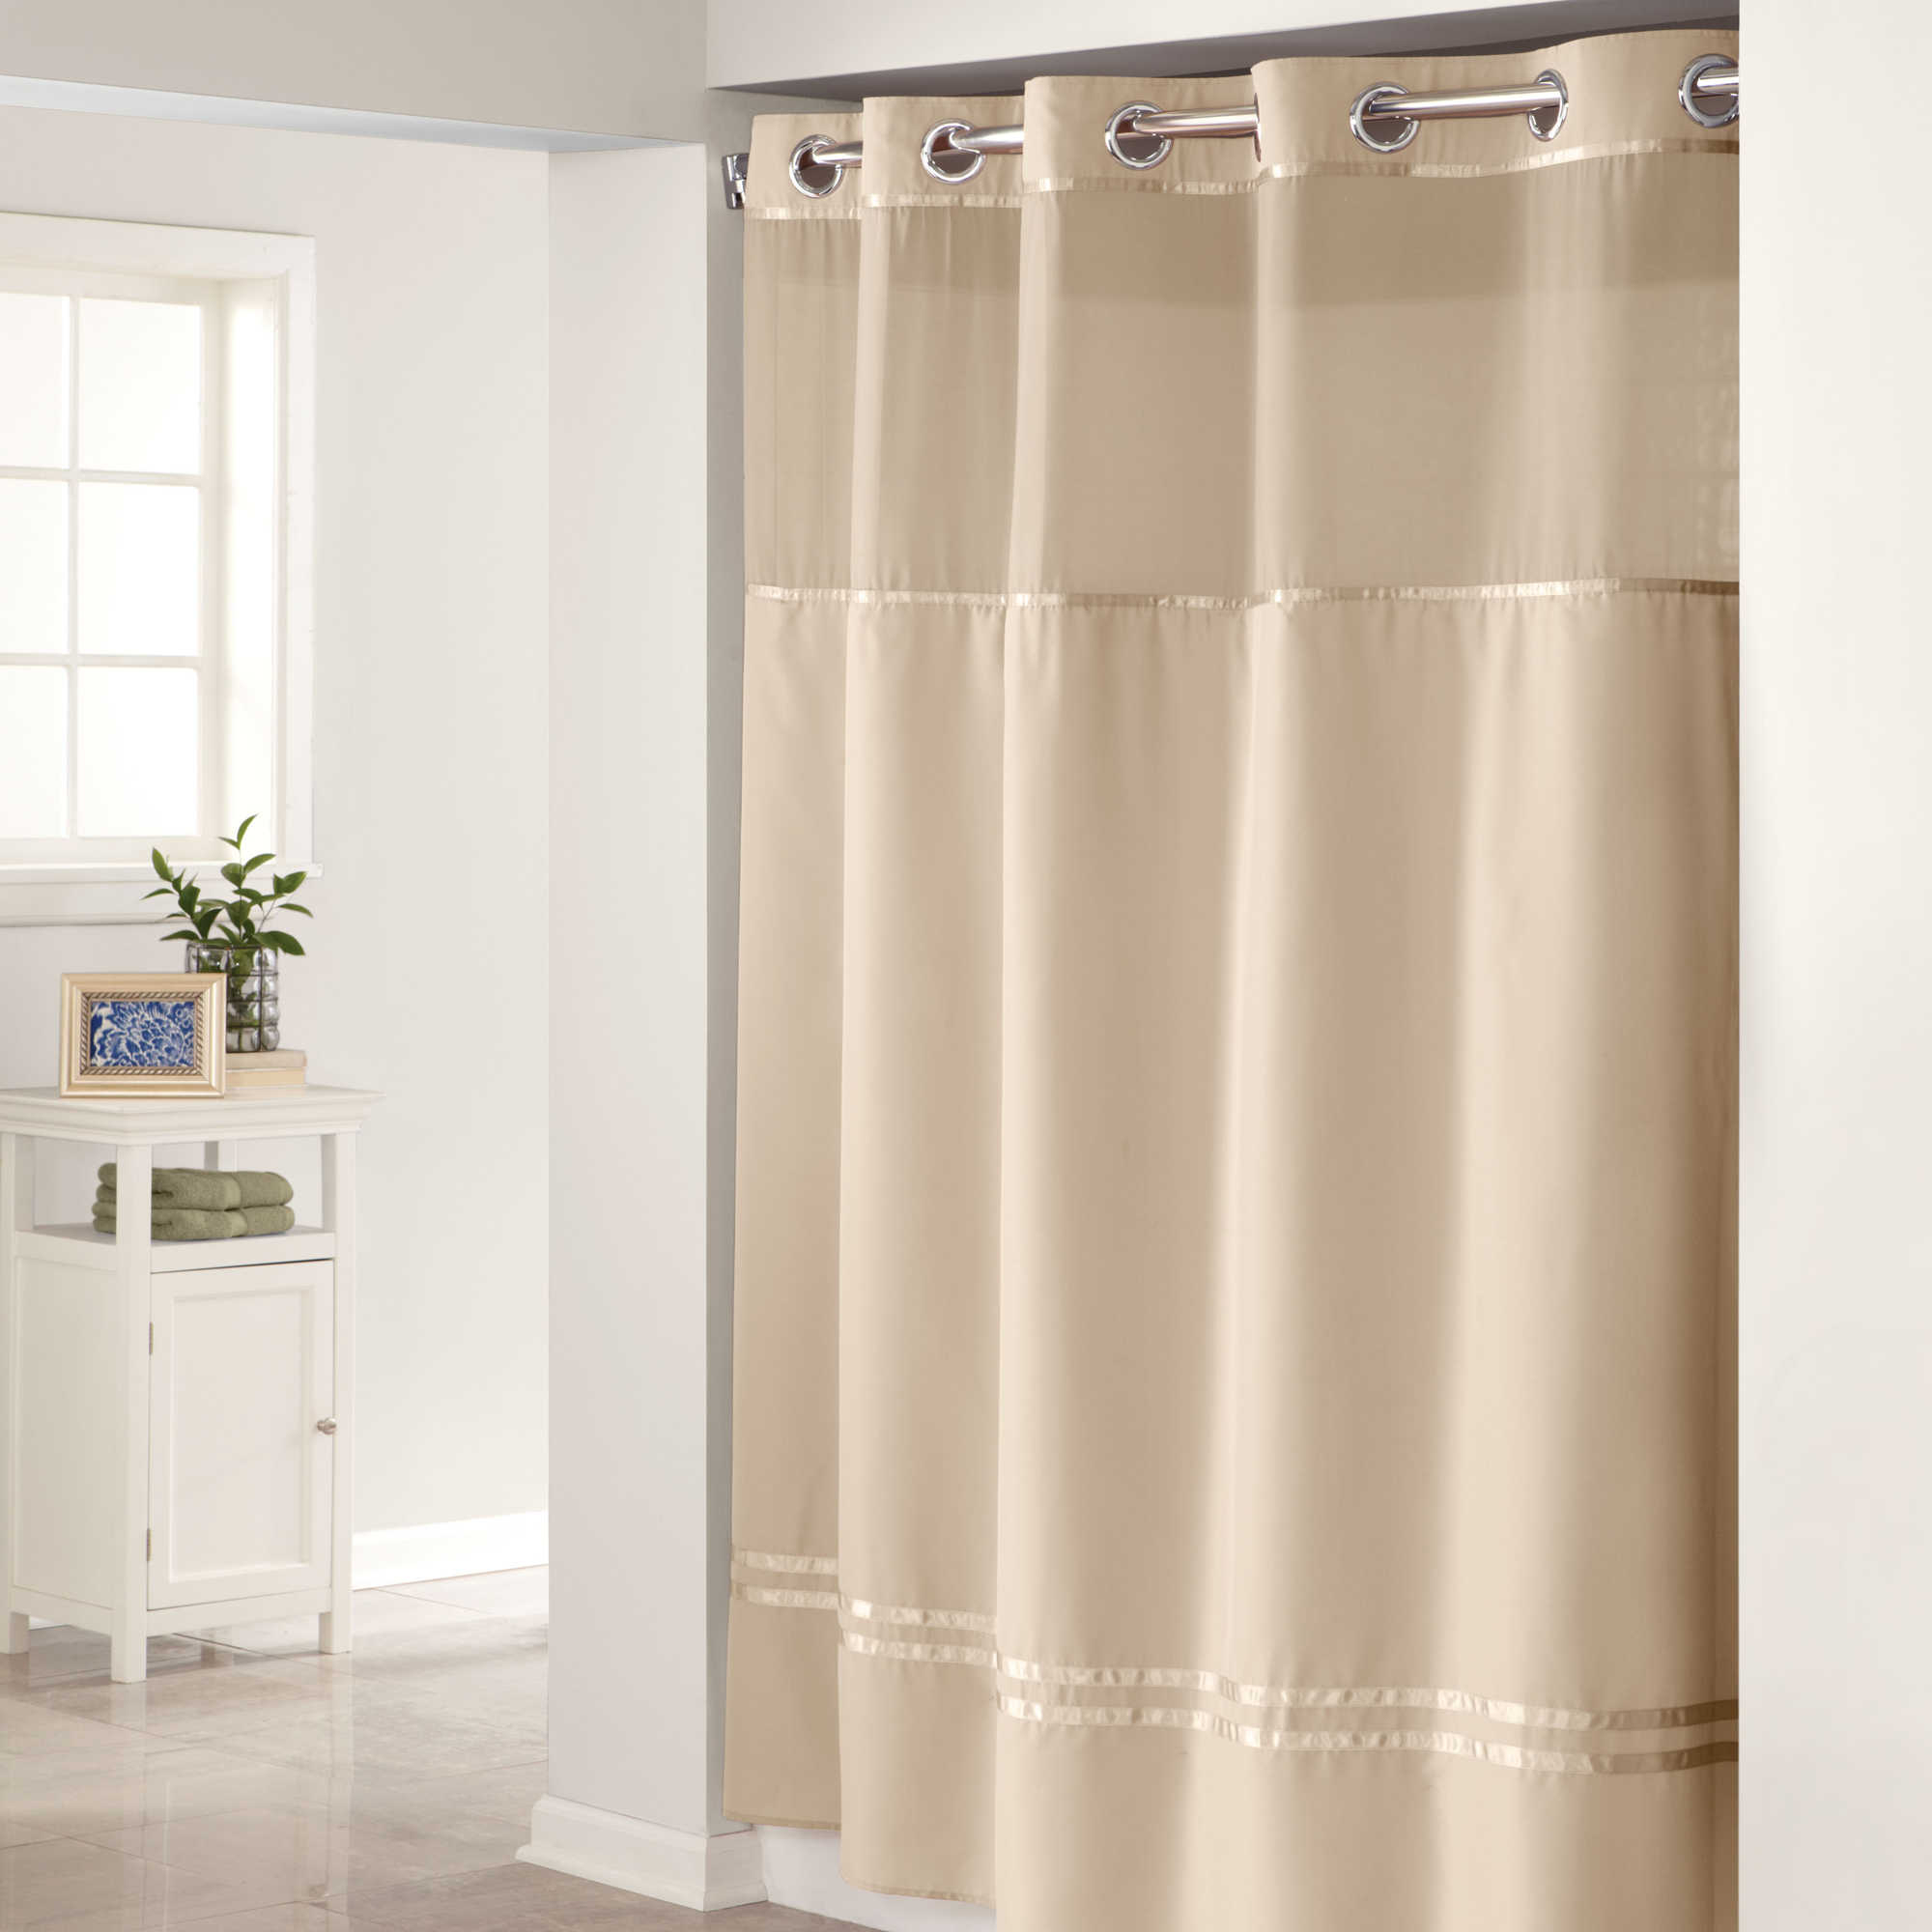 Lengths Of Shower Curtain Liners • Shower Curtains Ideas